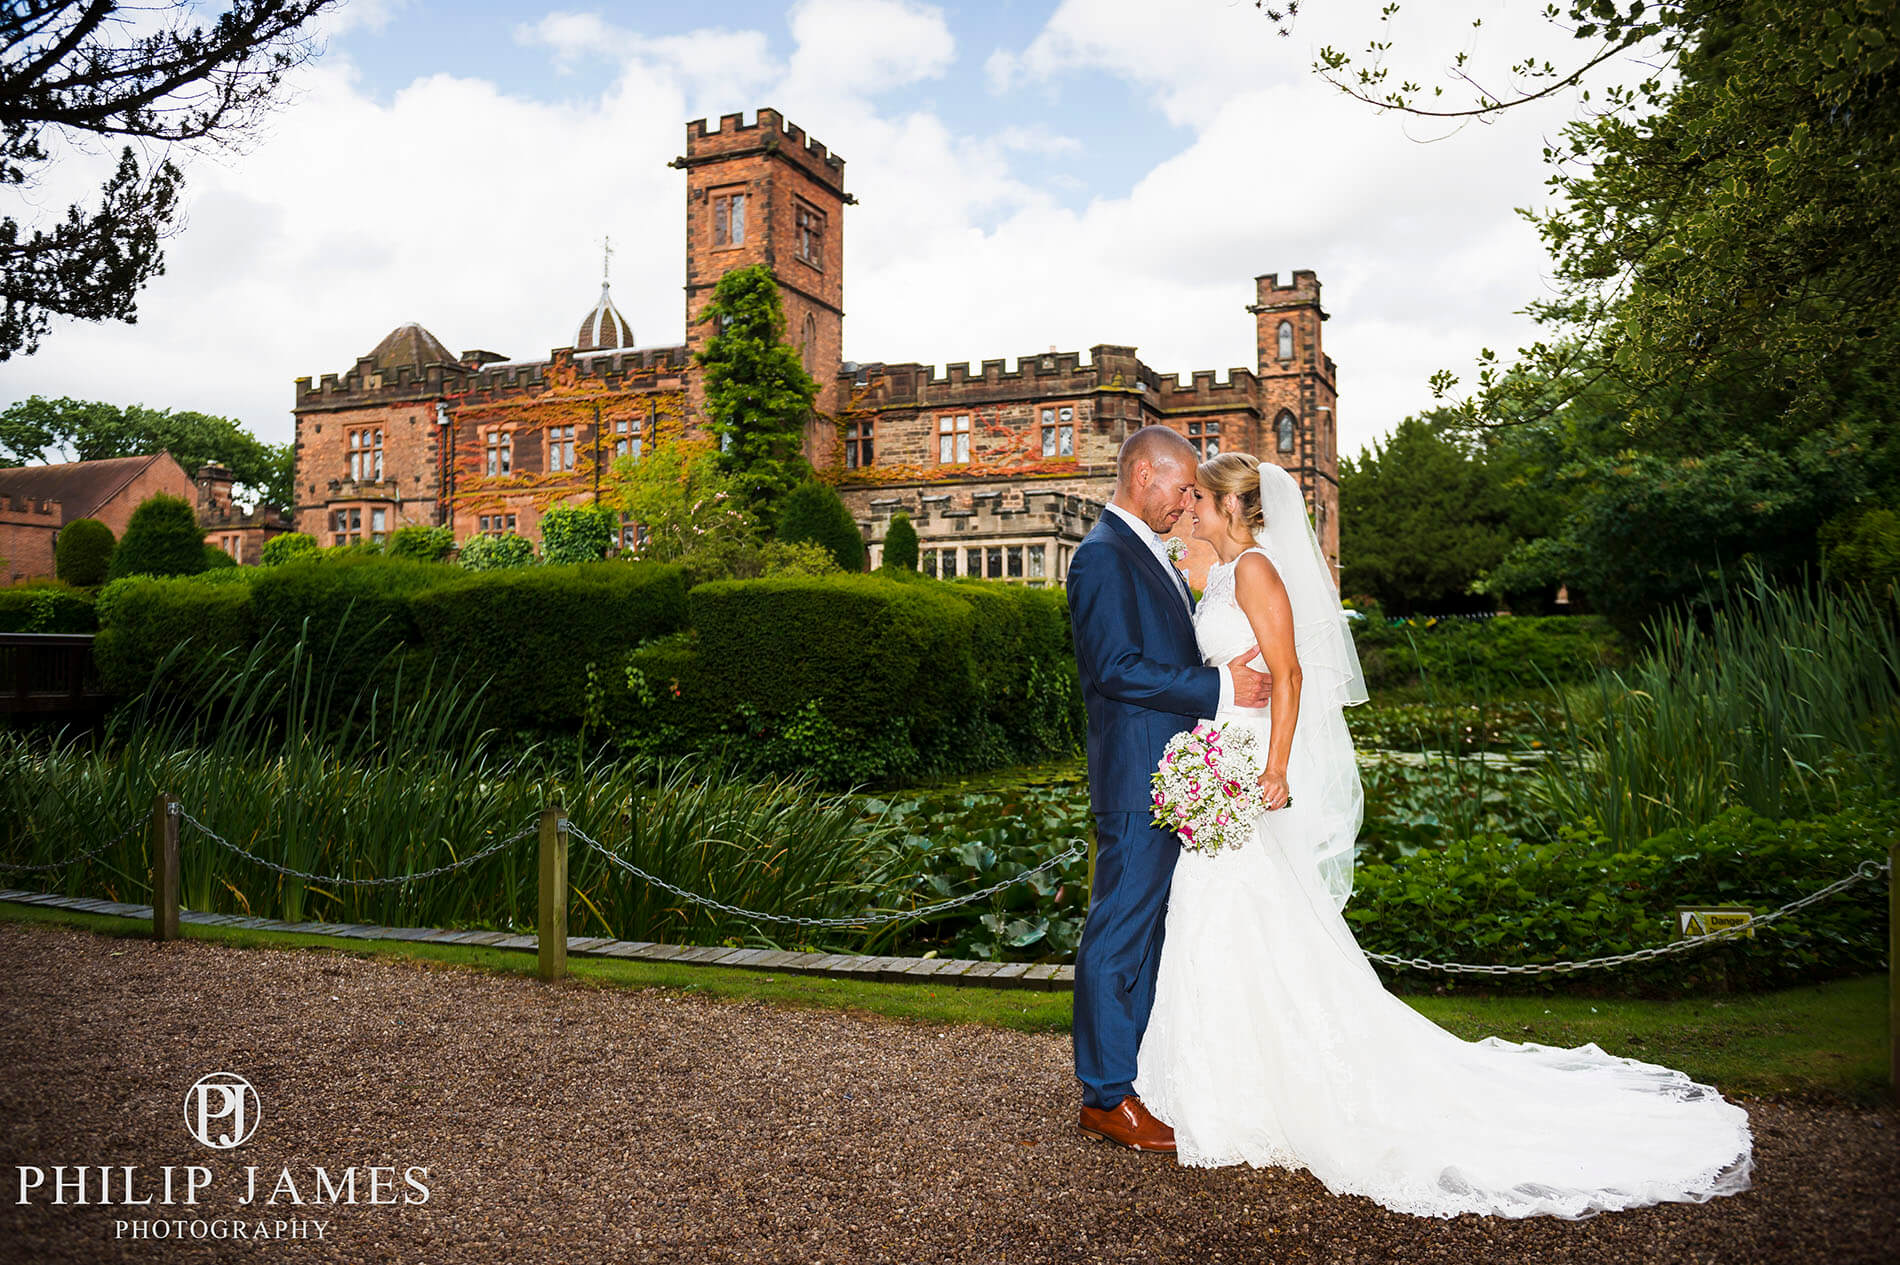 Birmingham Wedding Photographer - Philip James Photography based in Solihull (51 of 68)